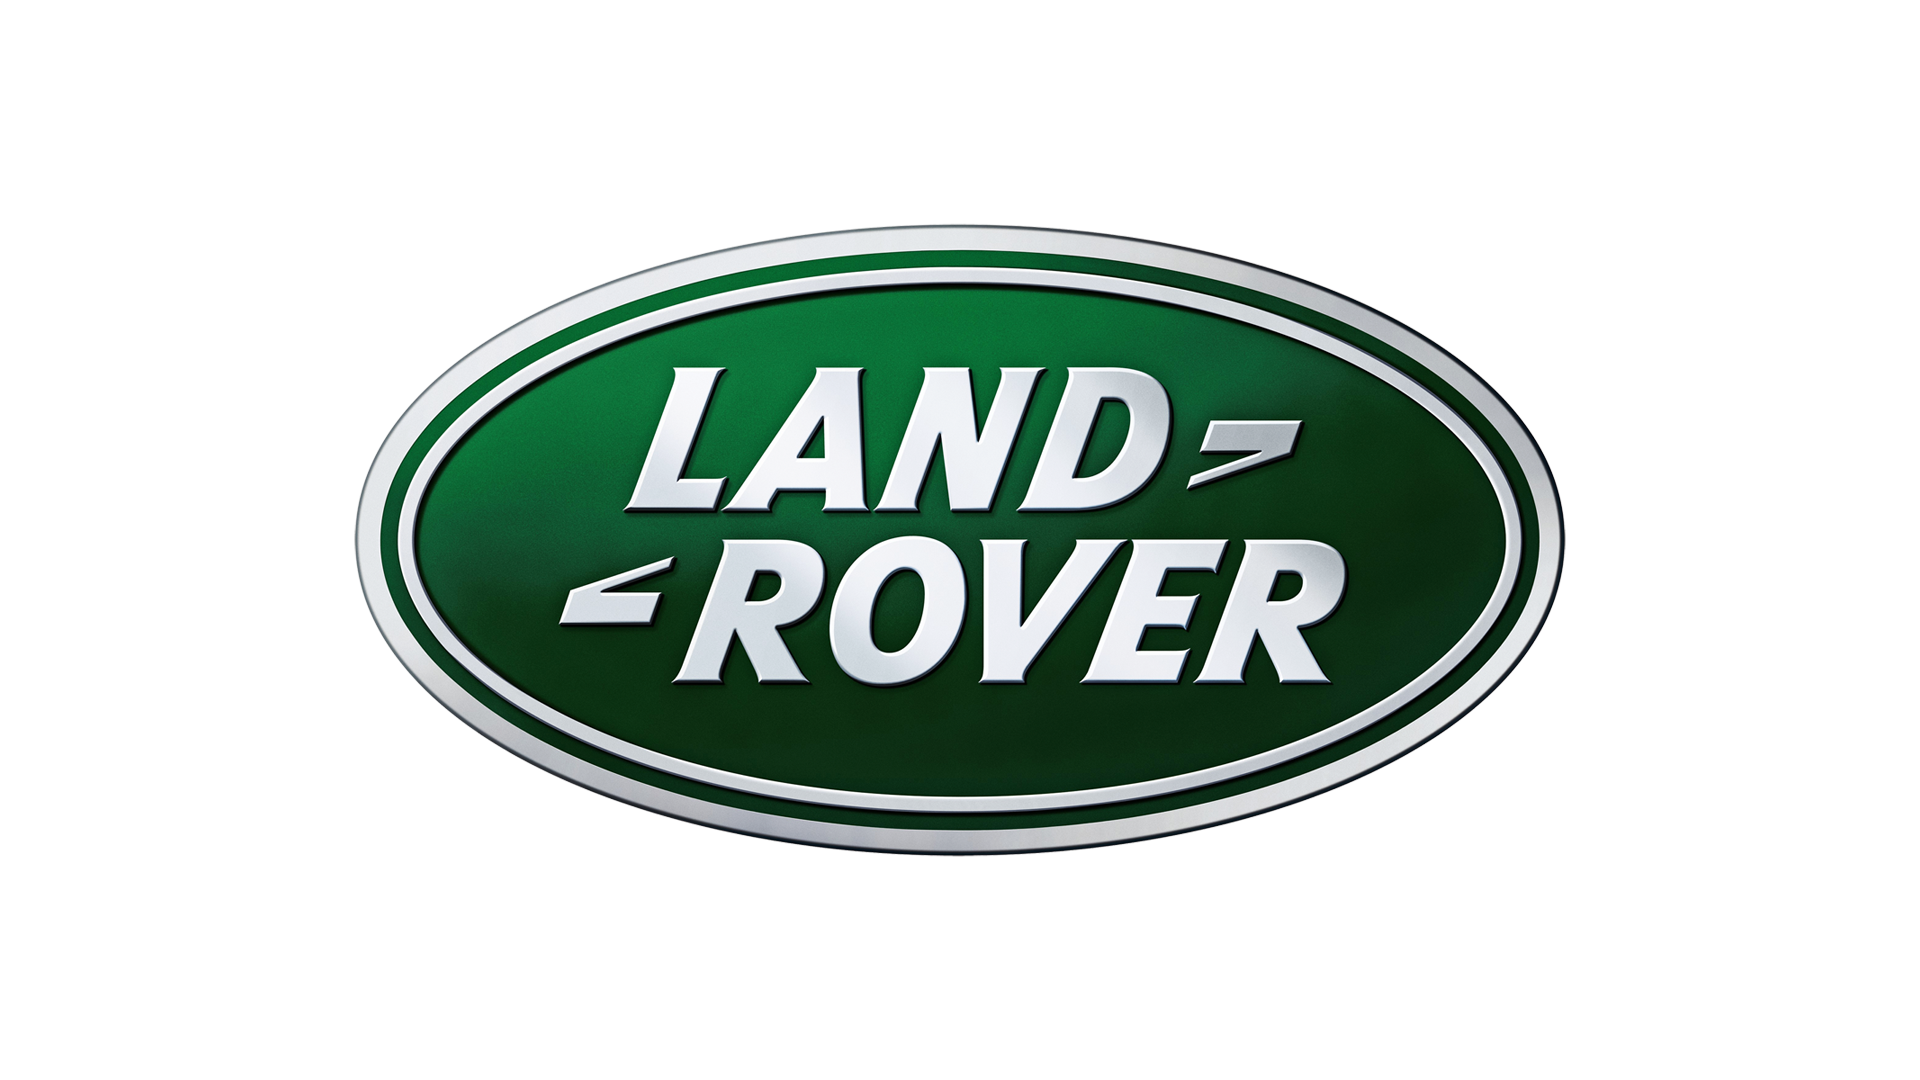 Land Rover Colorado Springs has variety of Vehicle Finance Options